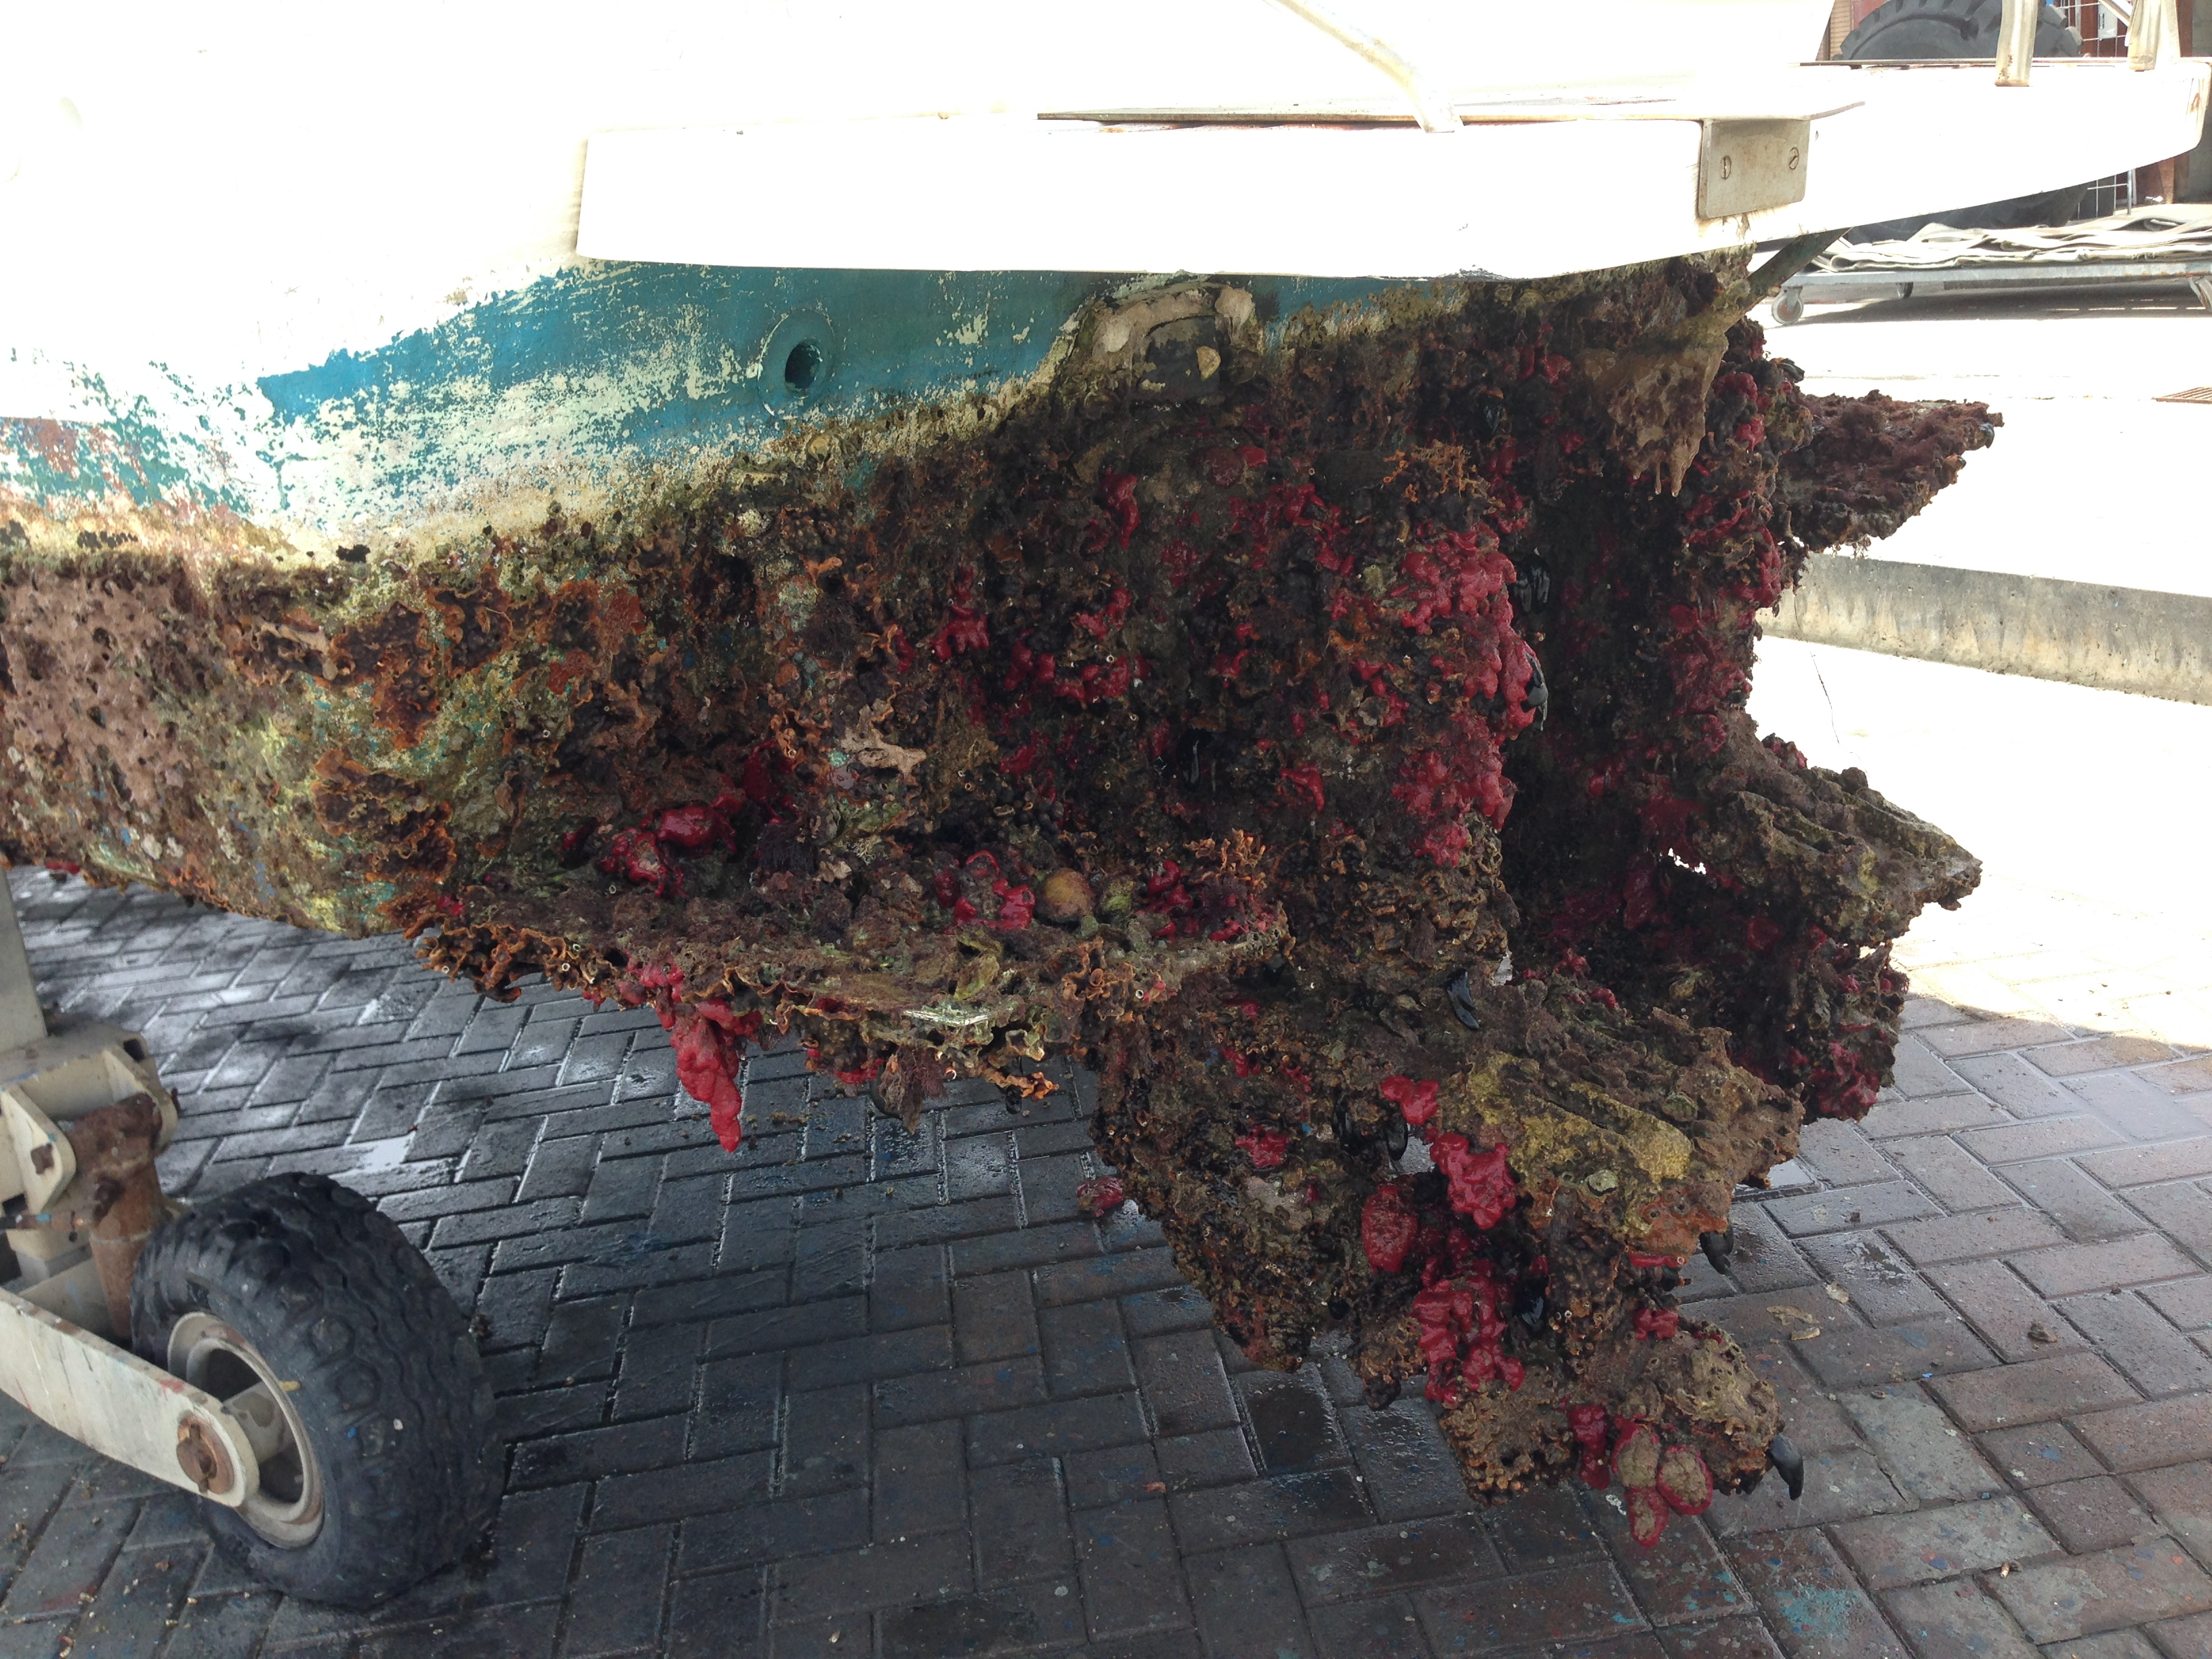 Invasive ascidians on a boat hull, Ashqelon, along the Mediterranean coast of Israel. (Photo by Mey-Tal Gewing)